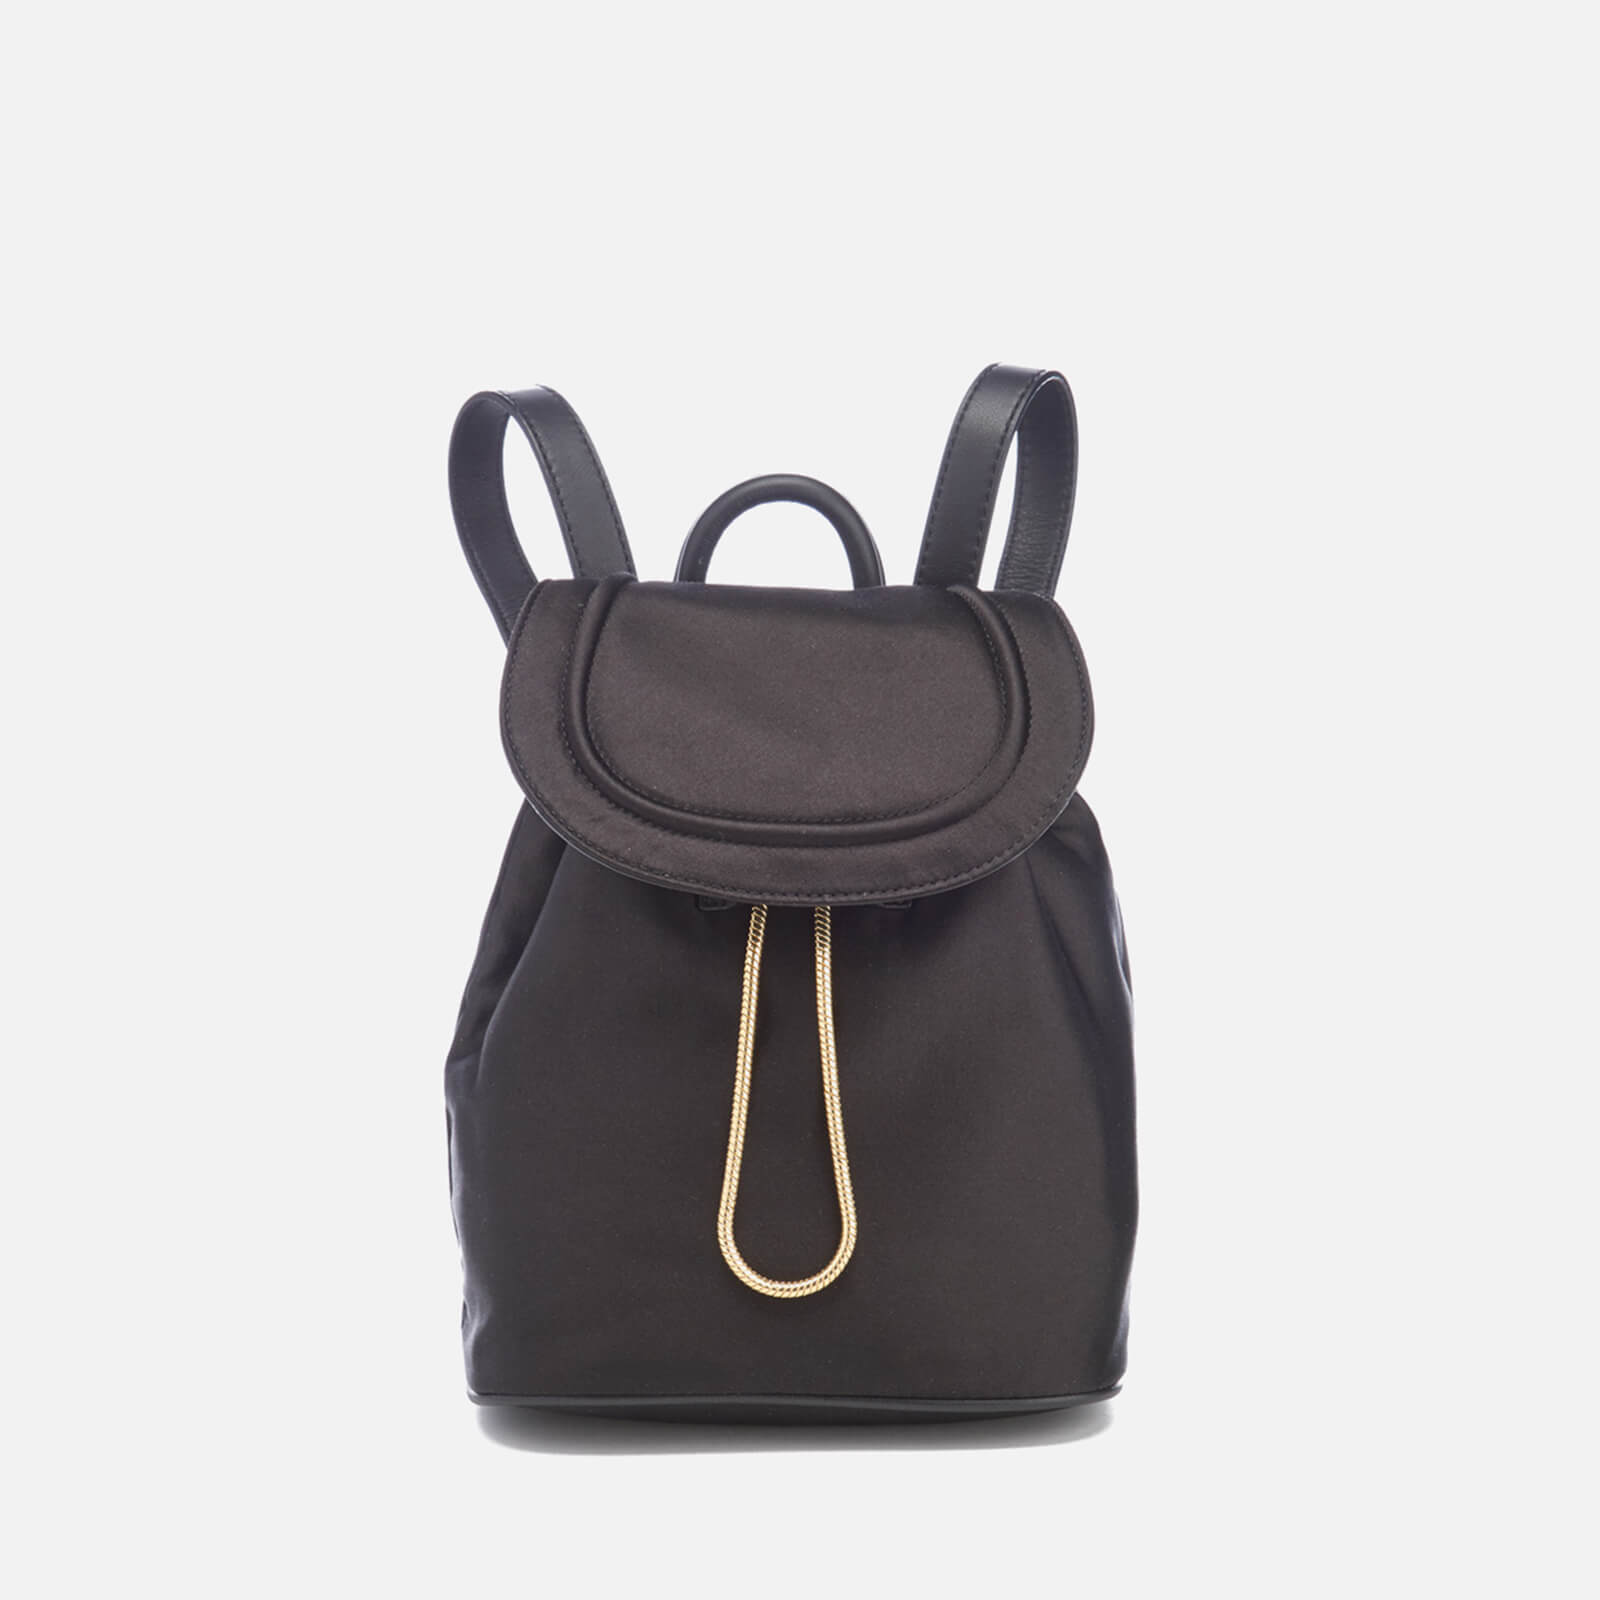 9097d1904bbb Diane von Furstenberg Women s Satin Backpack - Black - Free UK ...